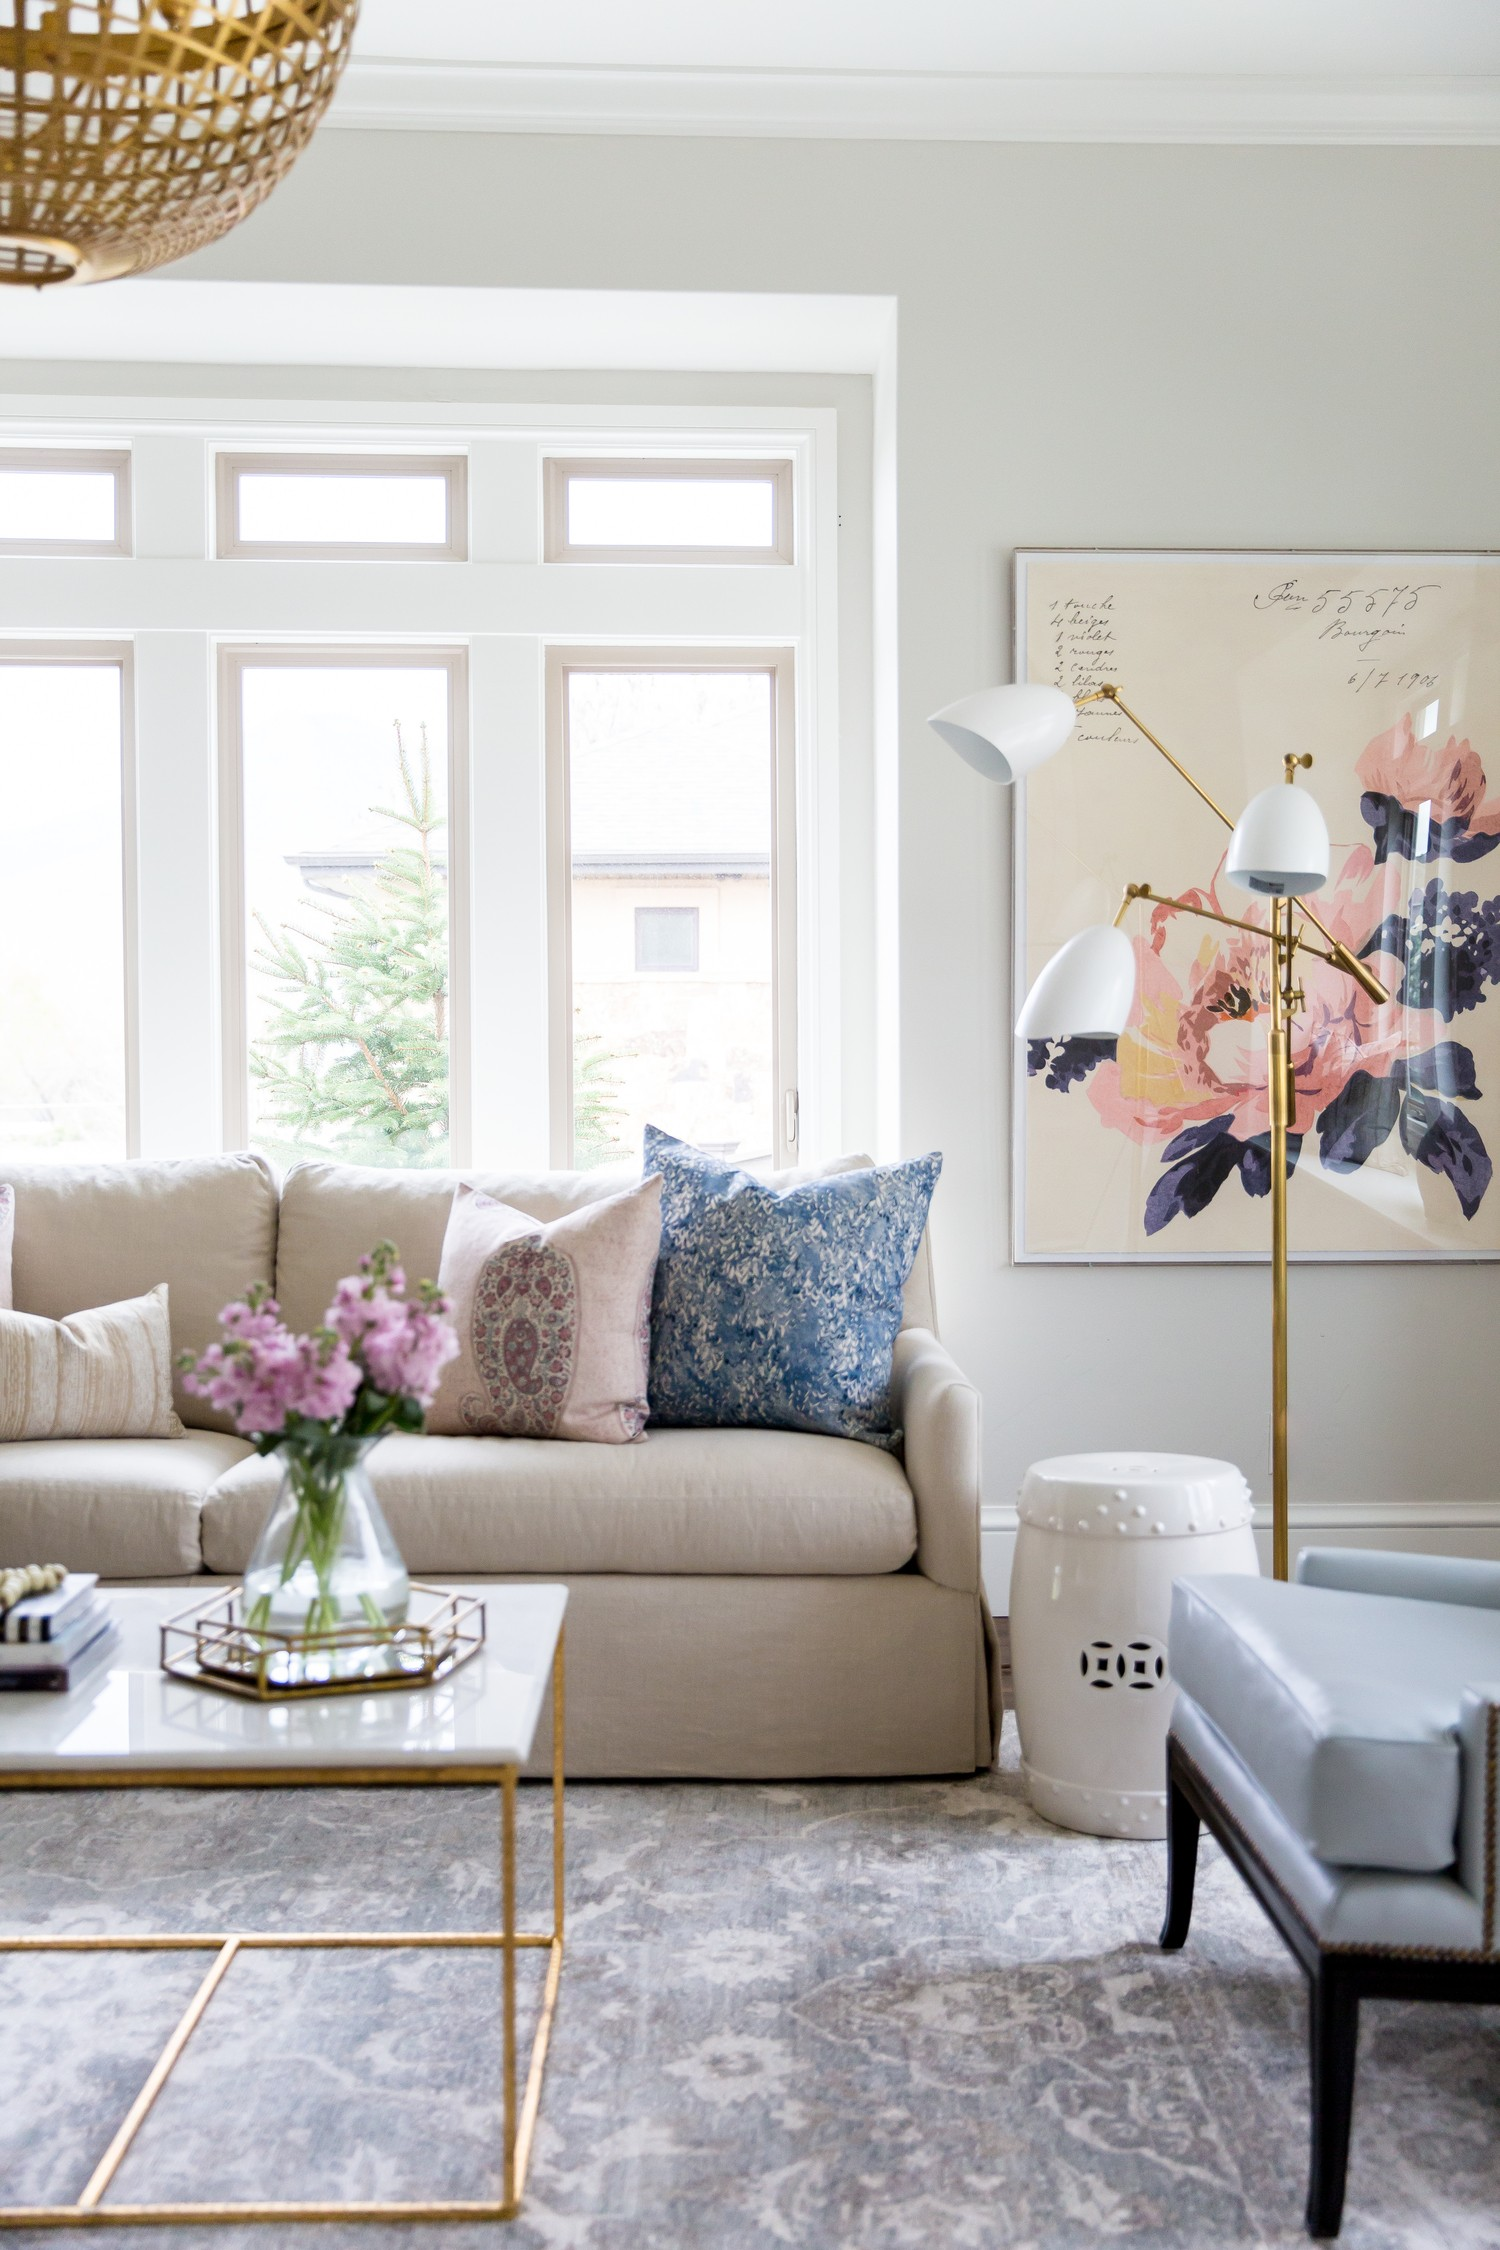 Large+Scale+Floral+Art+and+Modern+Lamp+__+Studio+McGee.jpg